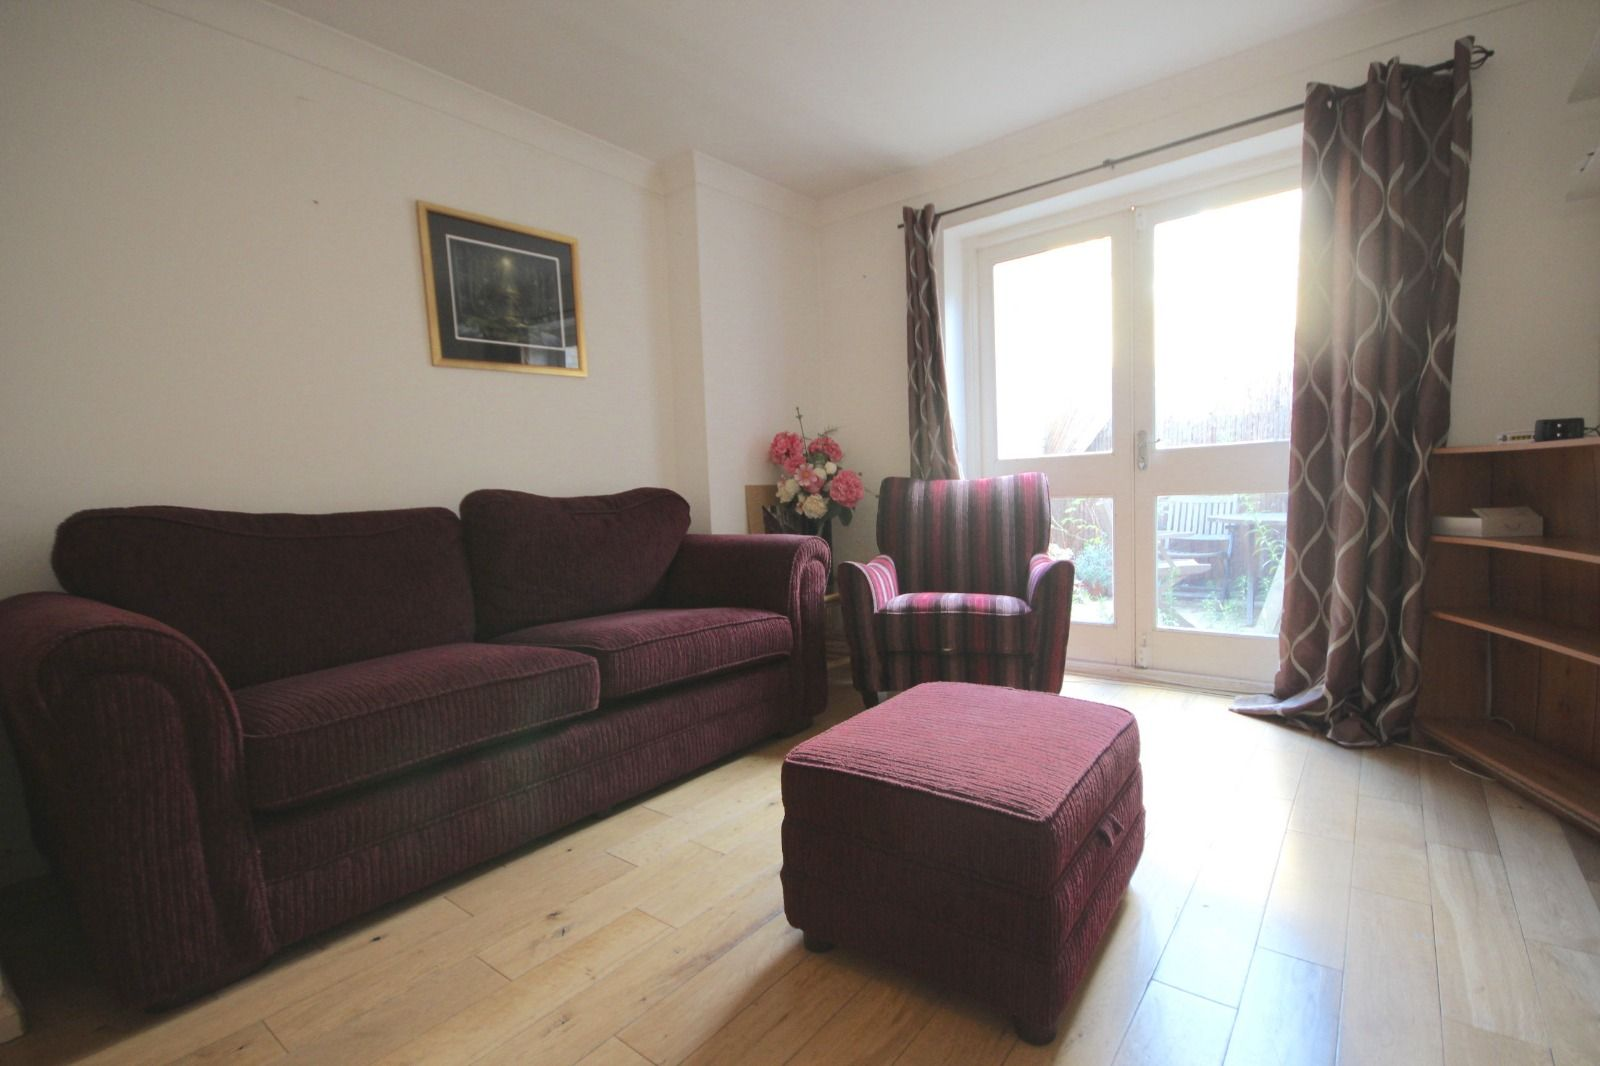 2 bed flat to rent in Southgate Road, N1